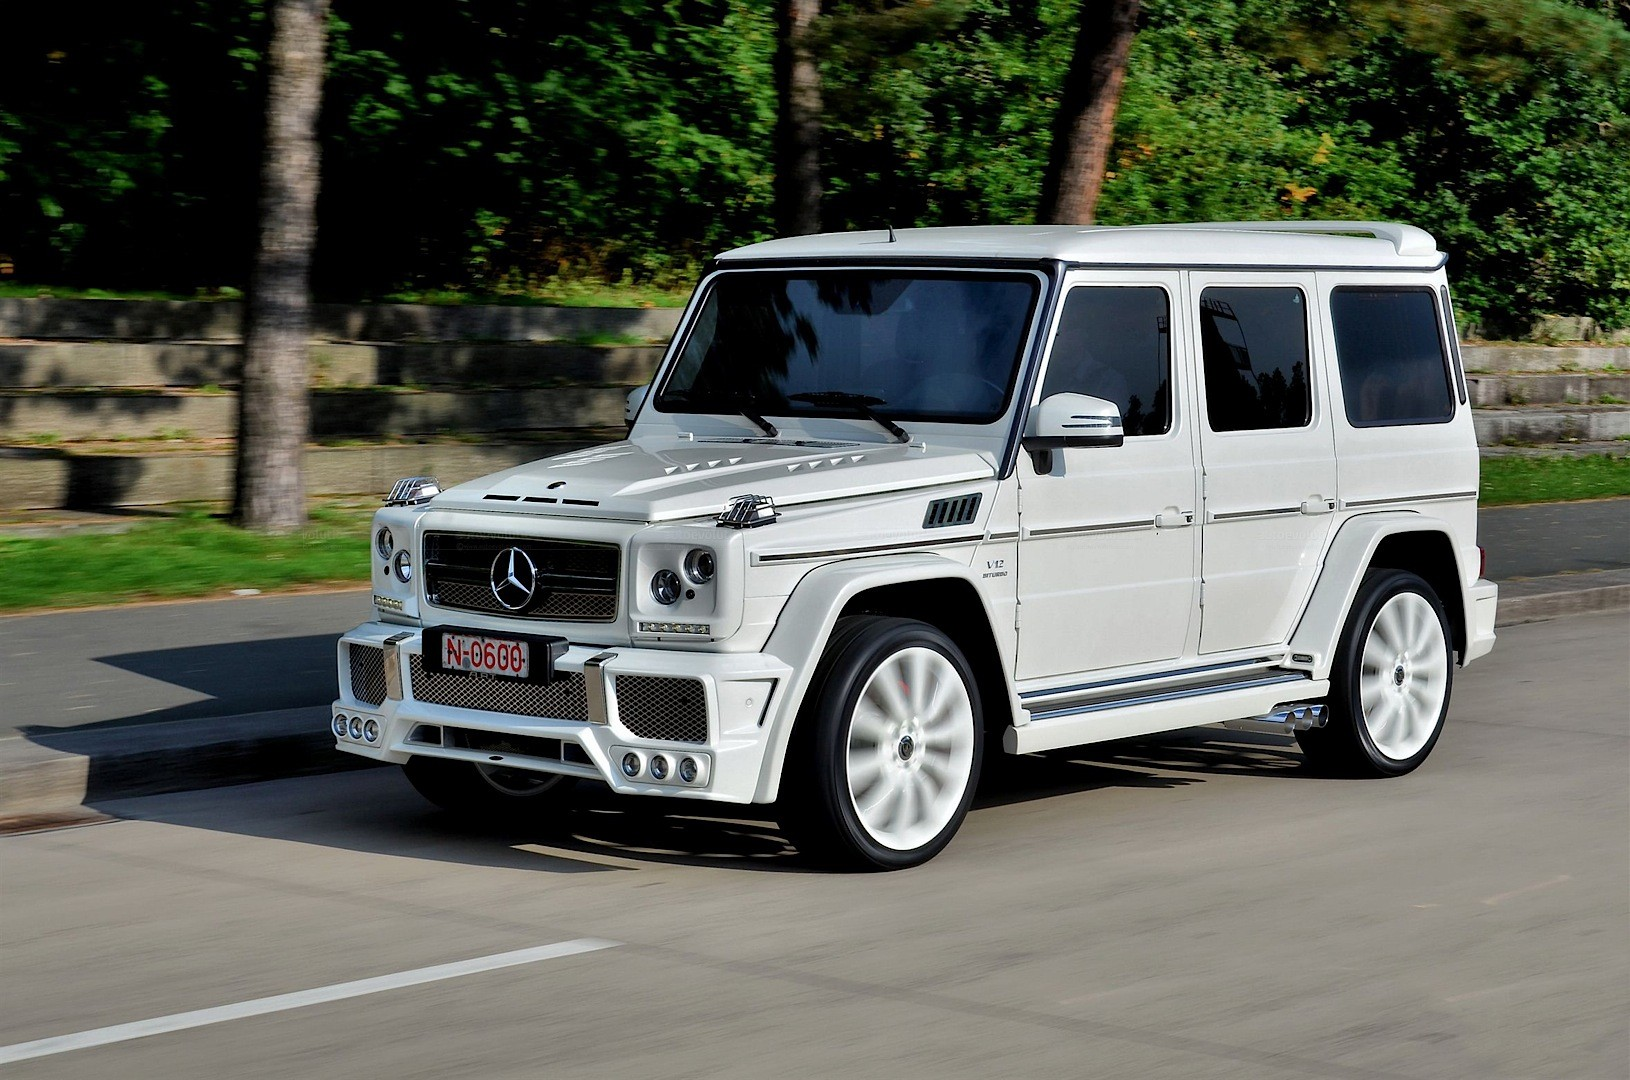 kevin hart upgrades to g65 amg from g63 what next. Black Bedroom Furniture Sets. Home Design Ideas